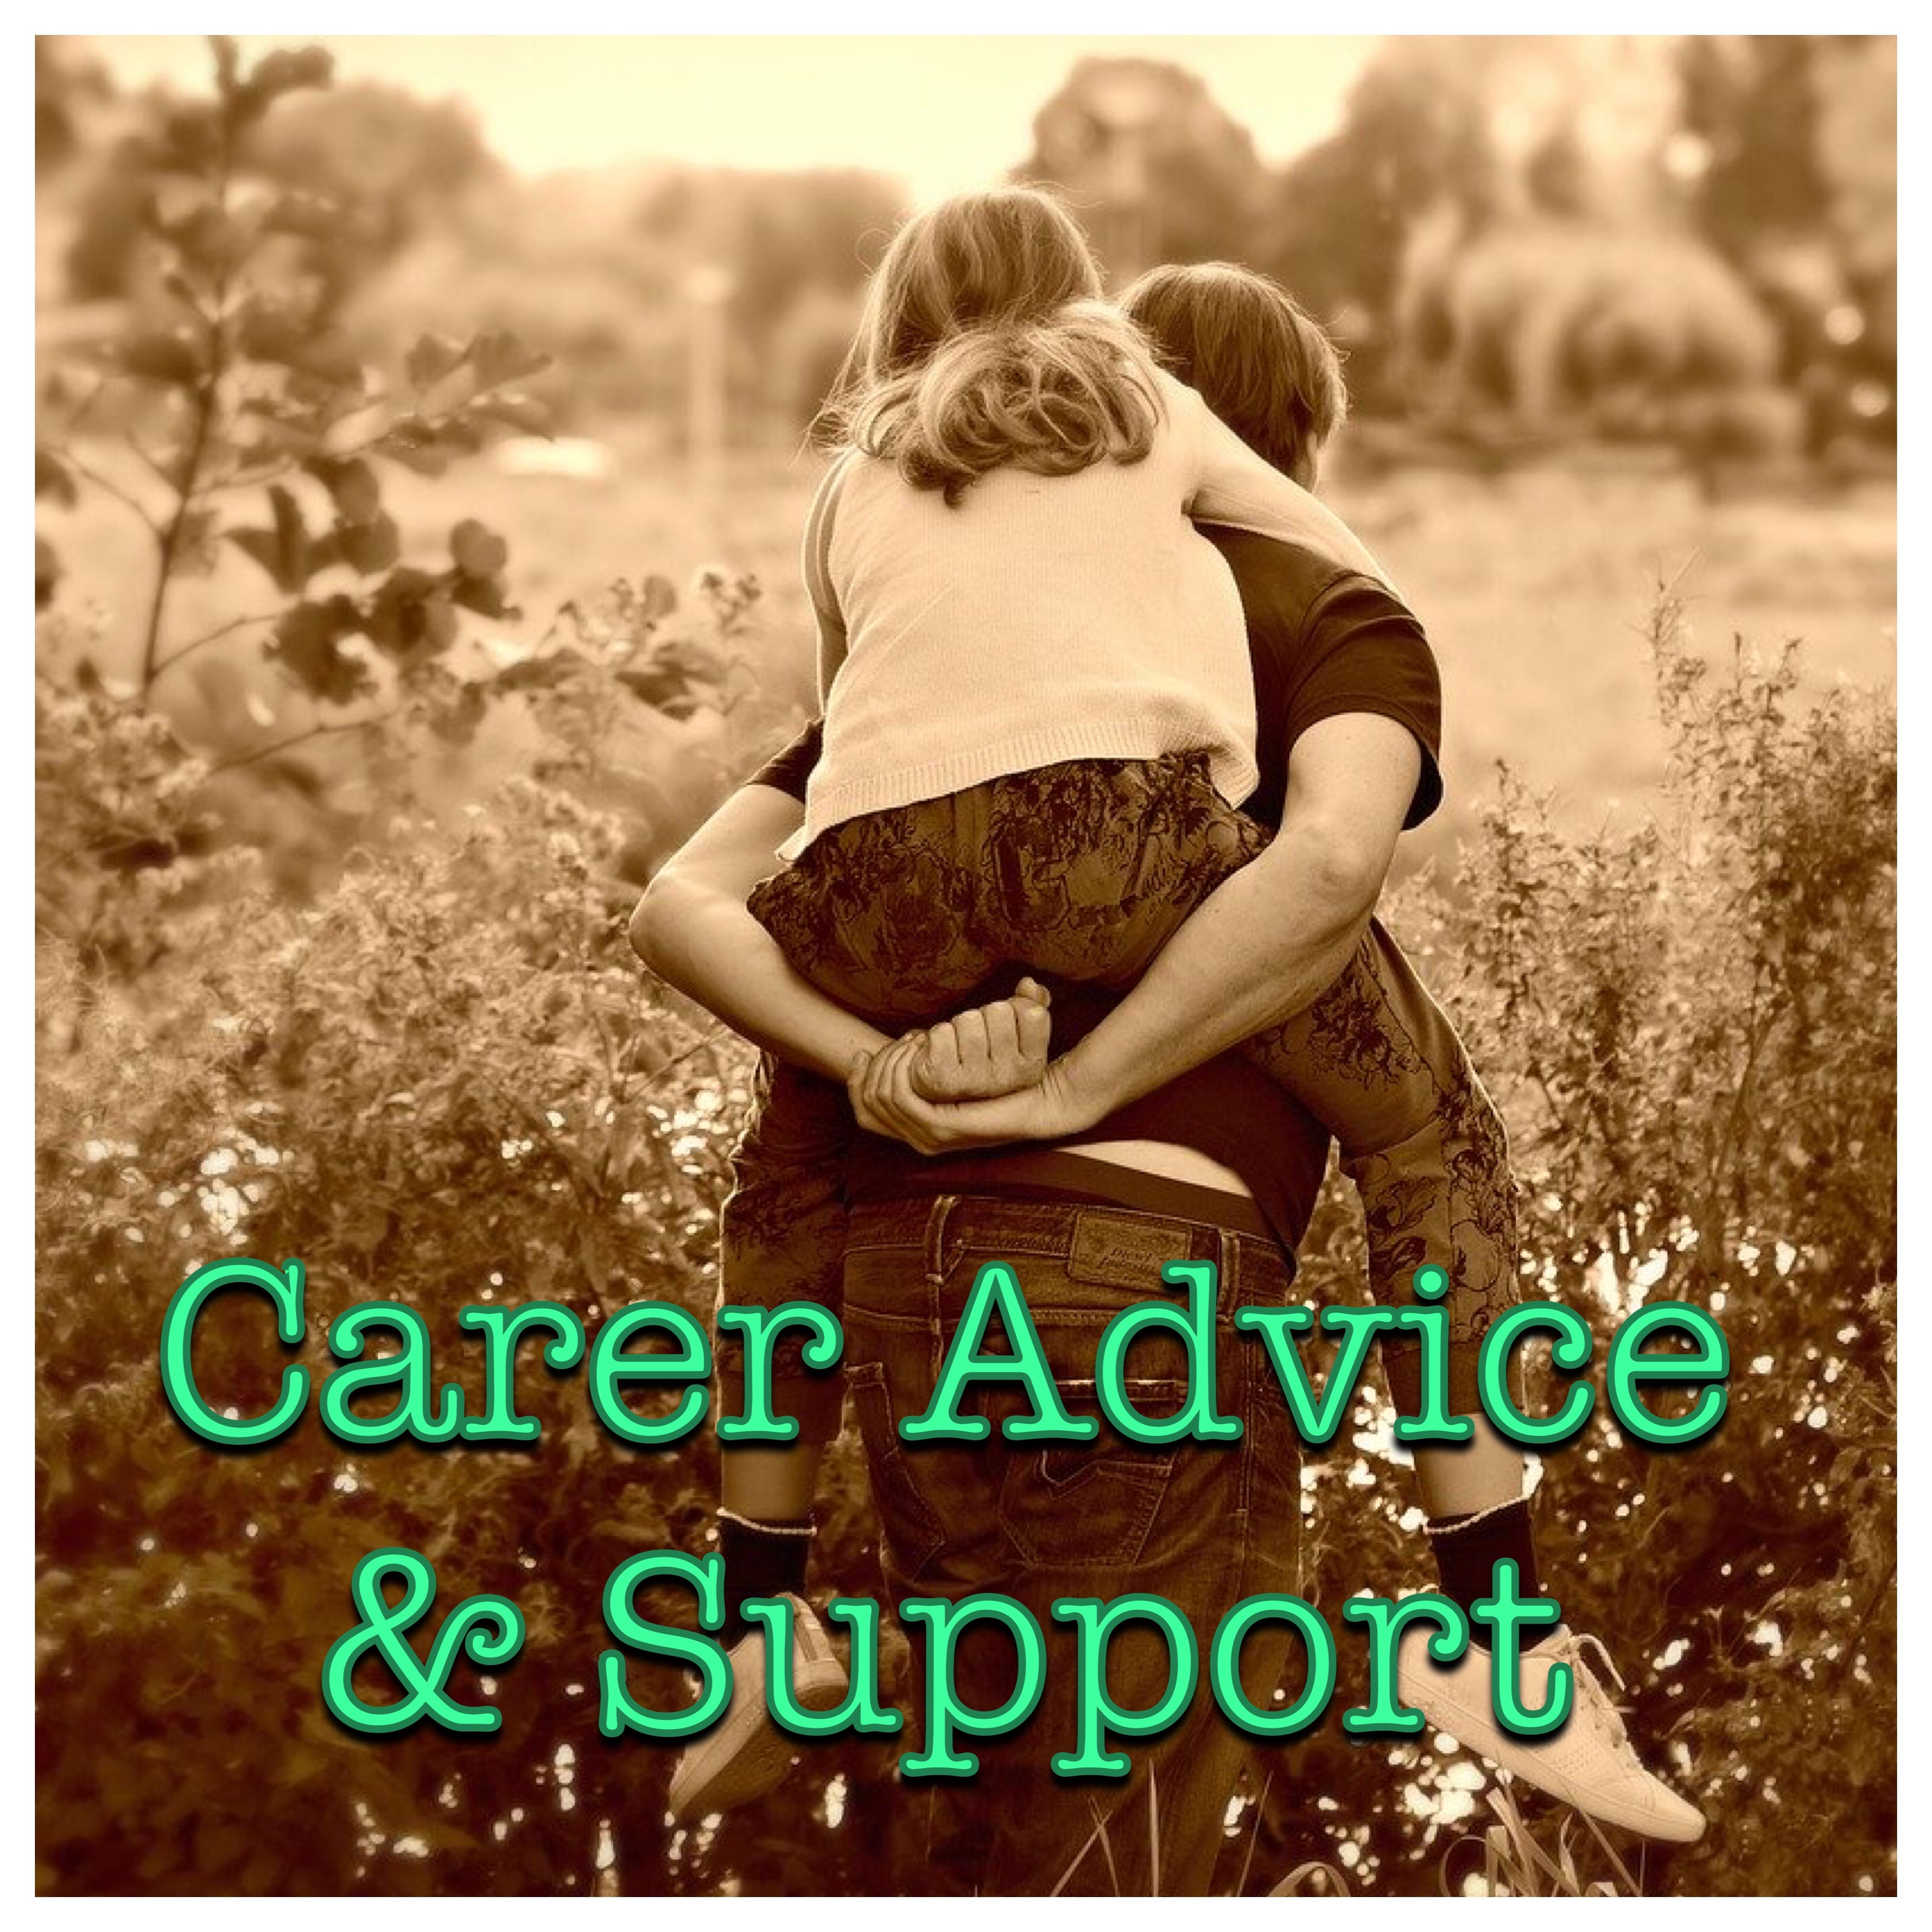 Carer Advice & Support Logo (someone giving a piggyback ride)